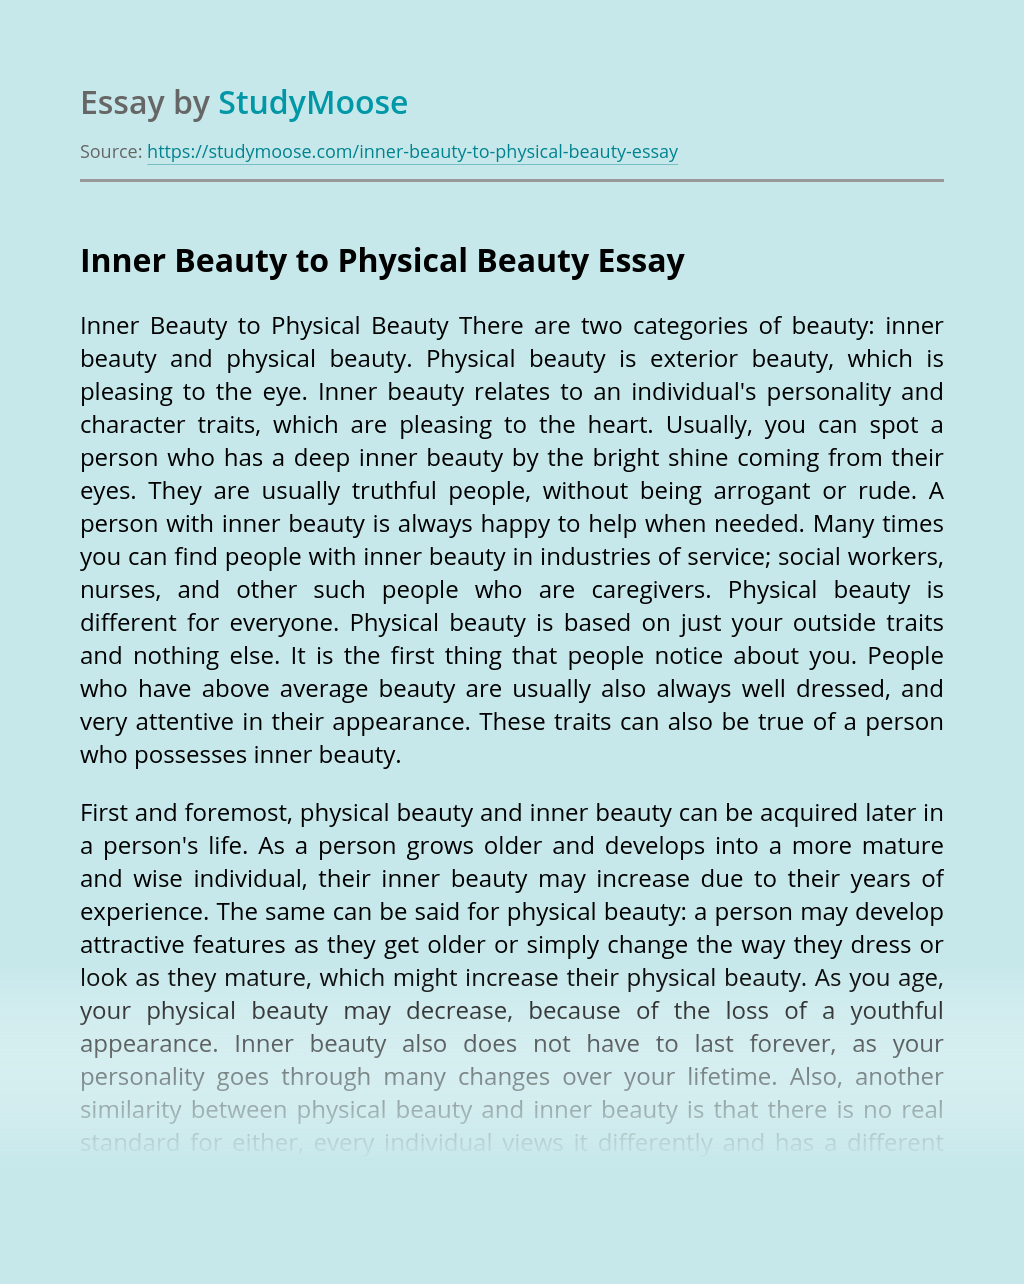 Inner Beauty to Physical Beauty